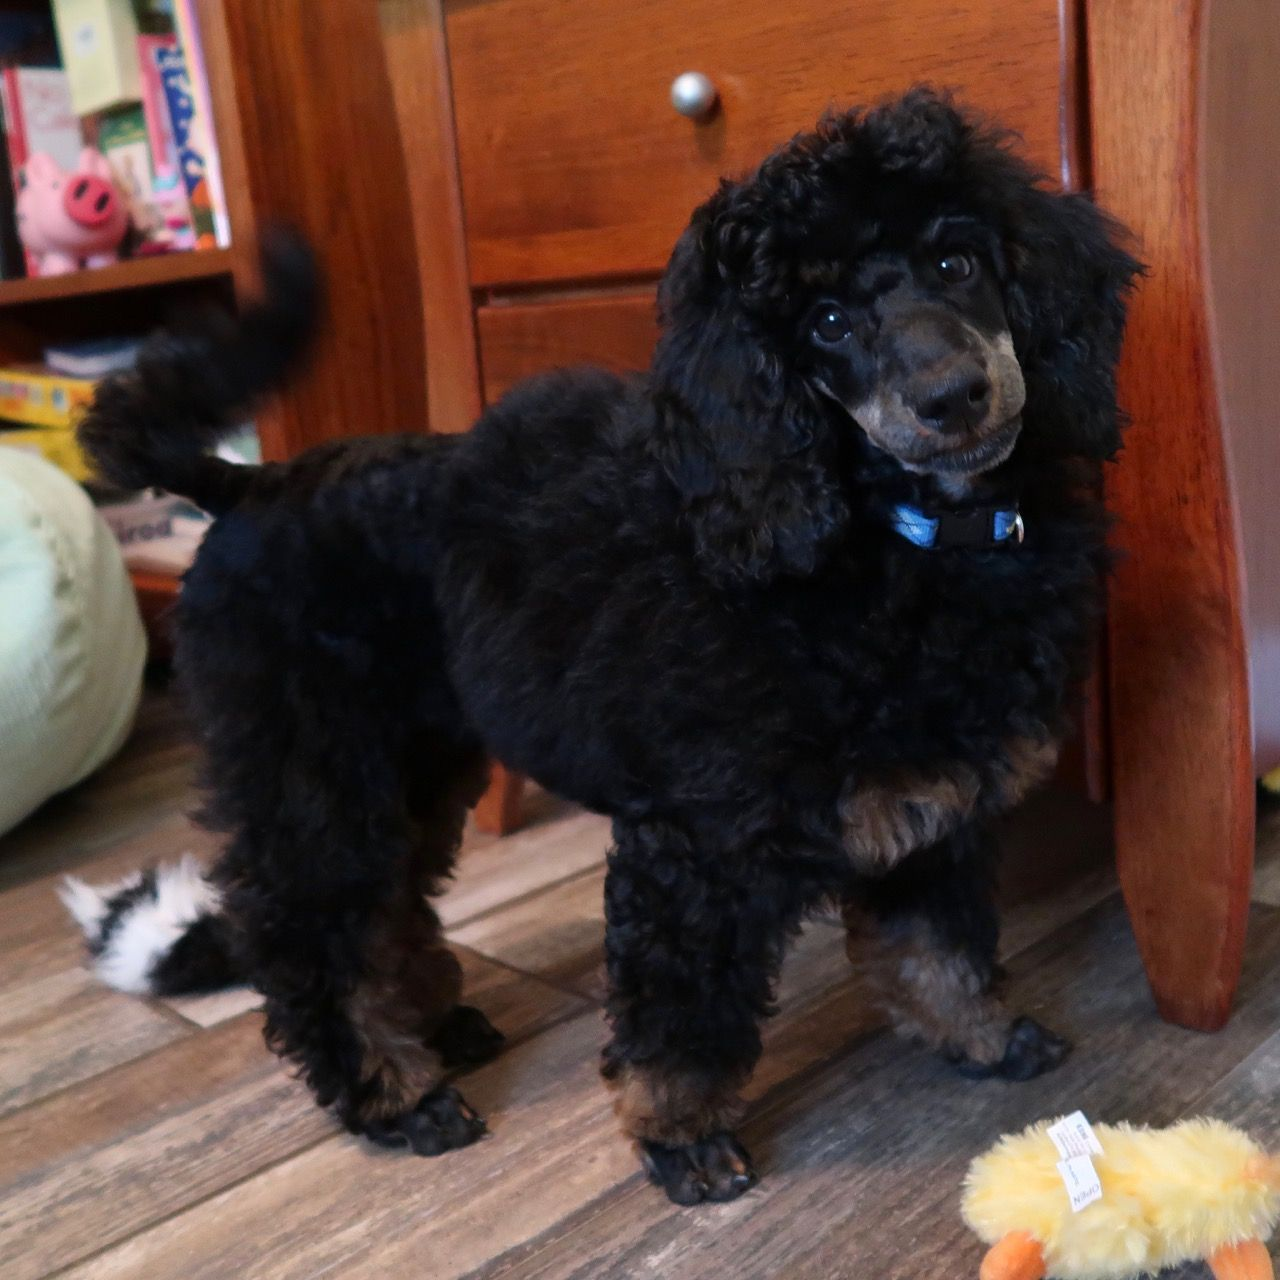 f7674d11481 Fritz is our imported phantom klein poodle male. He will produce both  phantom and solid black poodle puppies with our females. He comes from the  top German ...